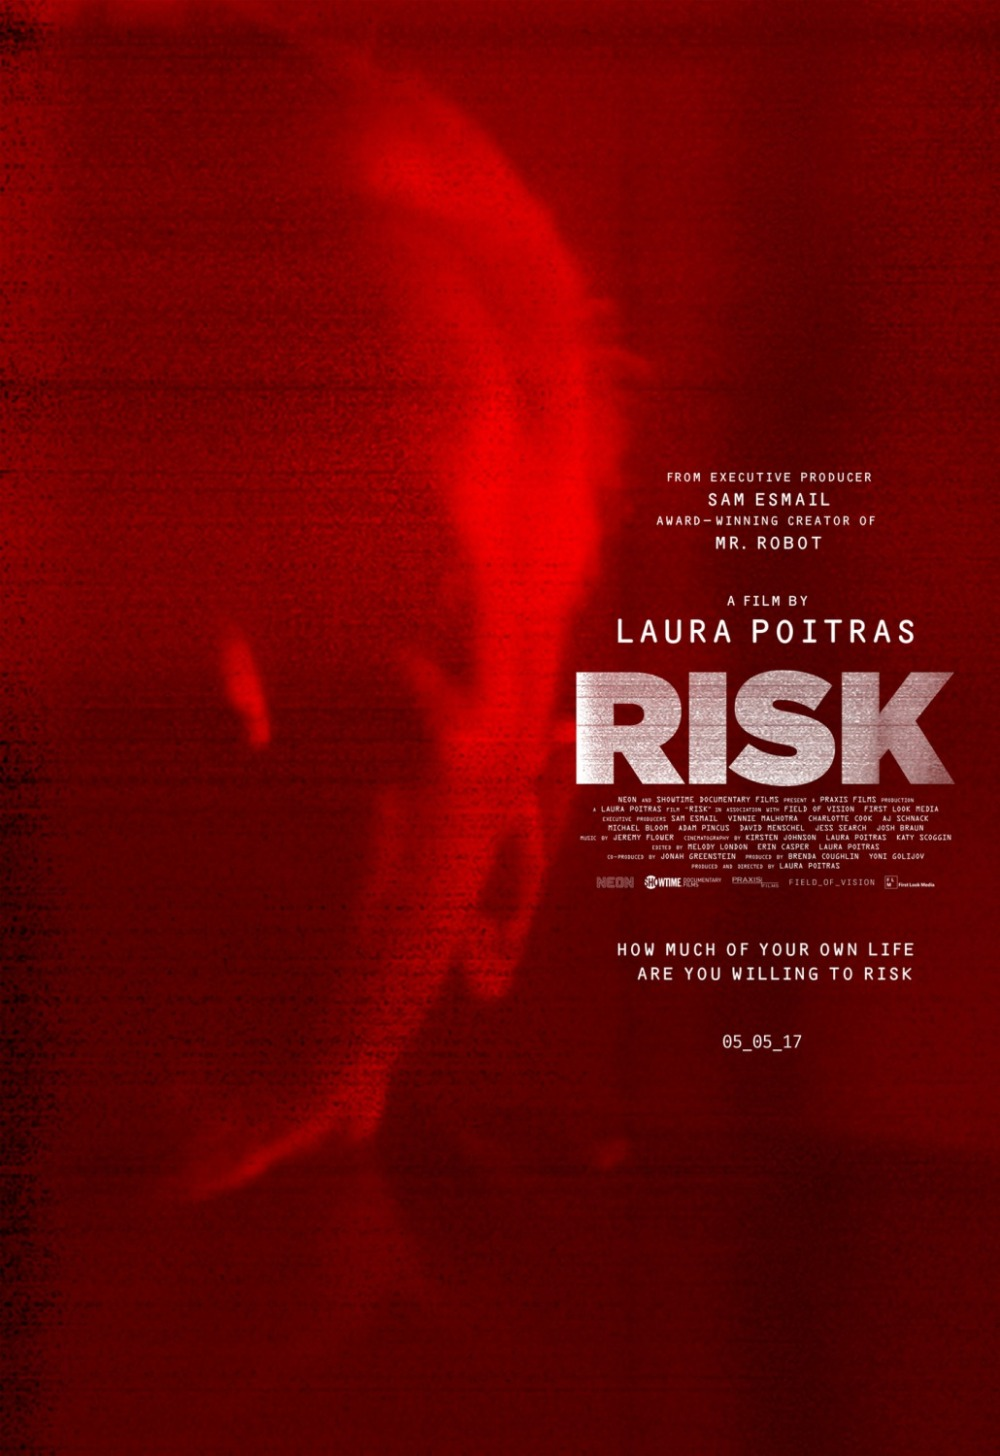 Risk documentary poster